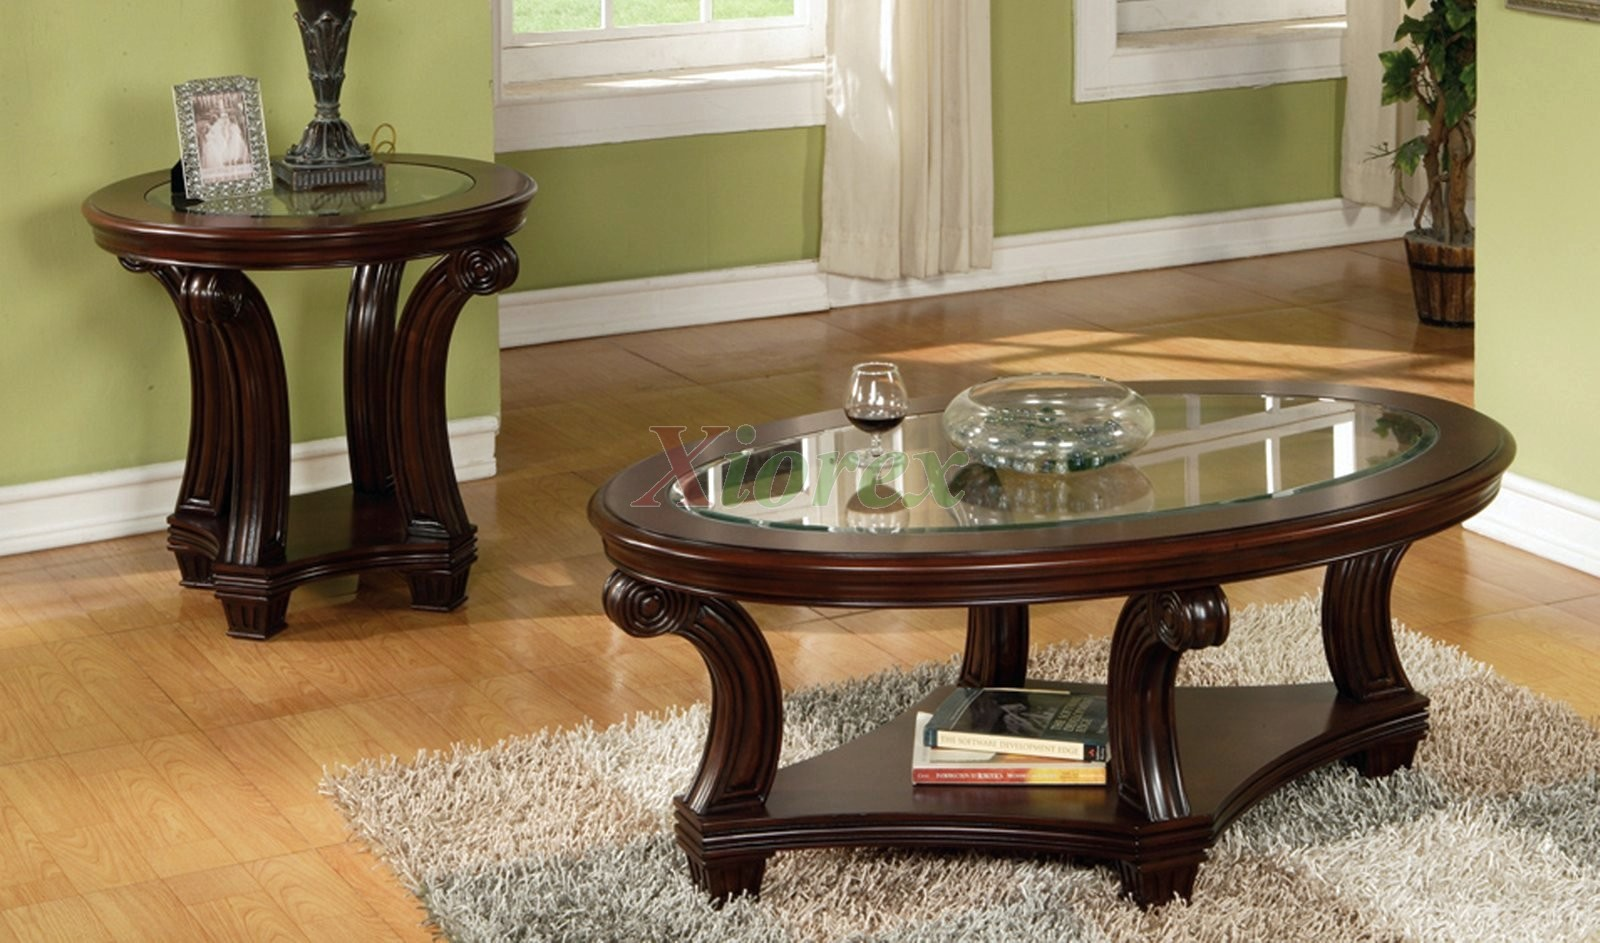 Perseus Glass Top Wooden Coffee Table Set Montreal Round Coffee And End  Table Sets Dark Wood. 2017 Popular Dark Wood Round Coffee and End Table Sets